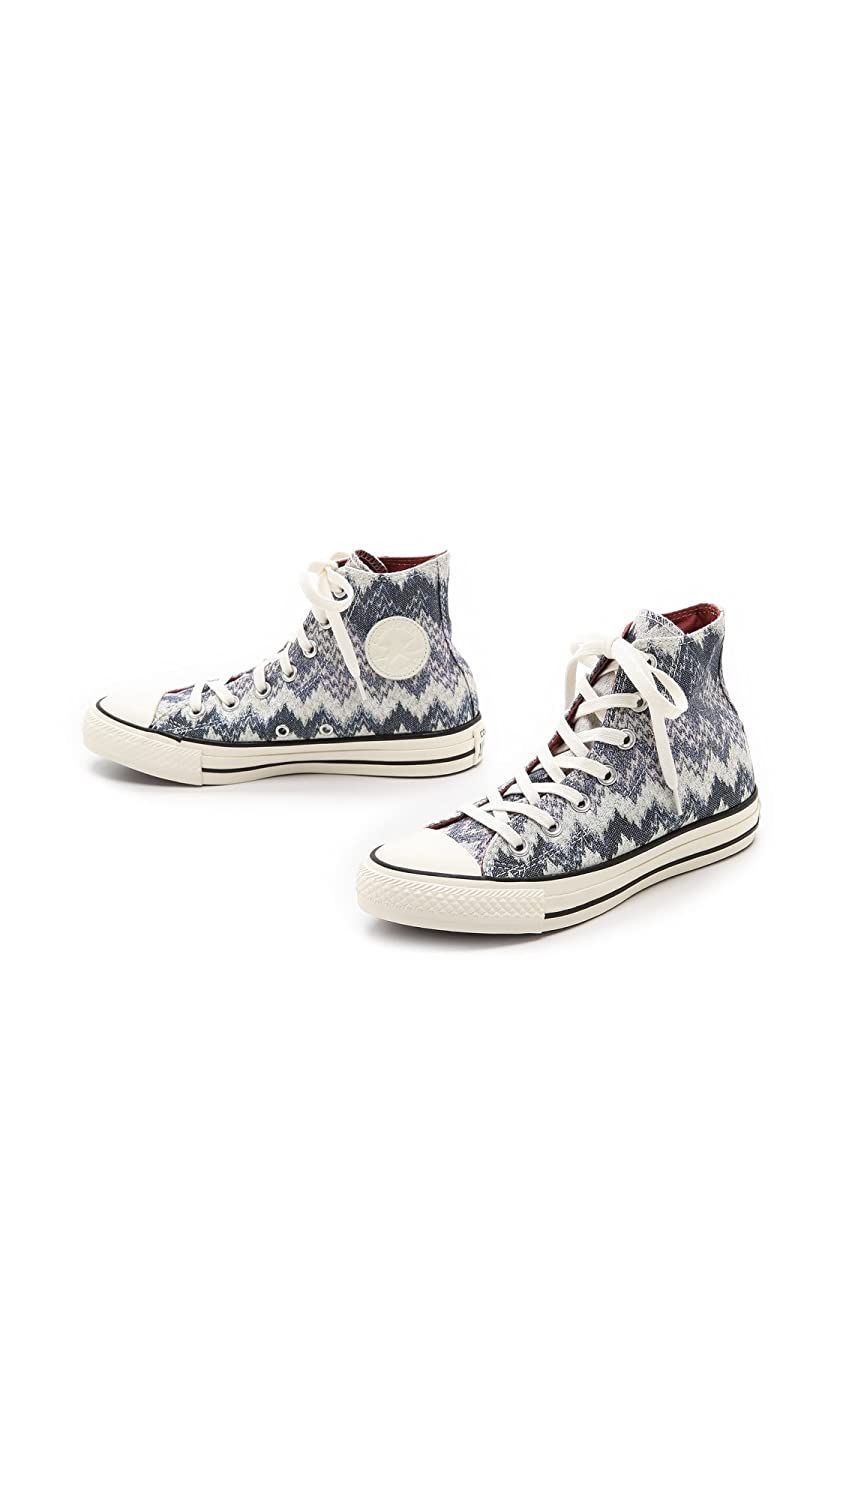 Unisex Converse X Missoni Chuck Taylor All Star Sneakers